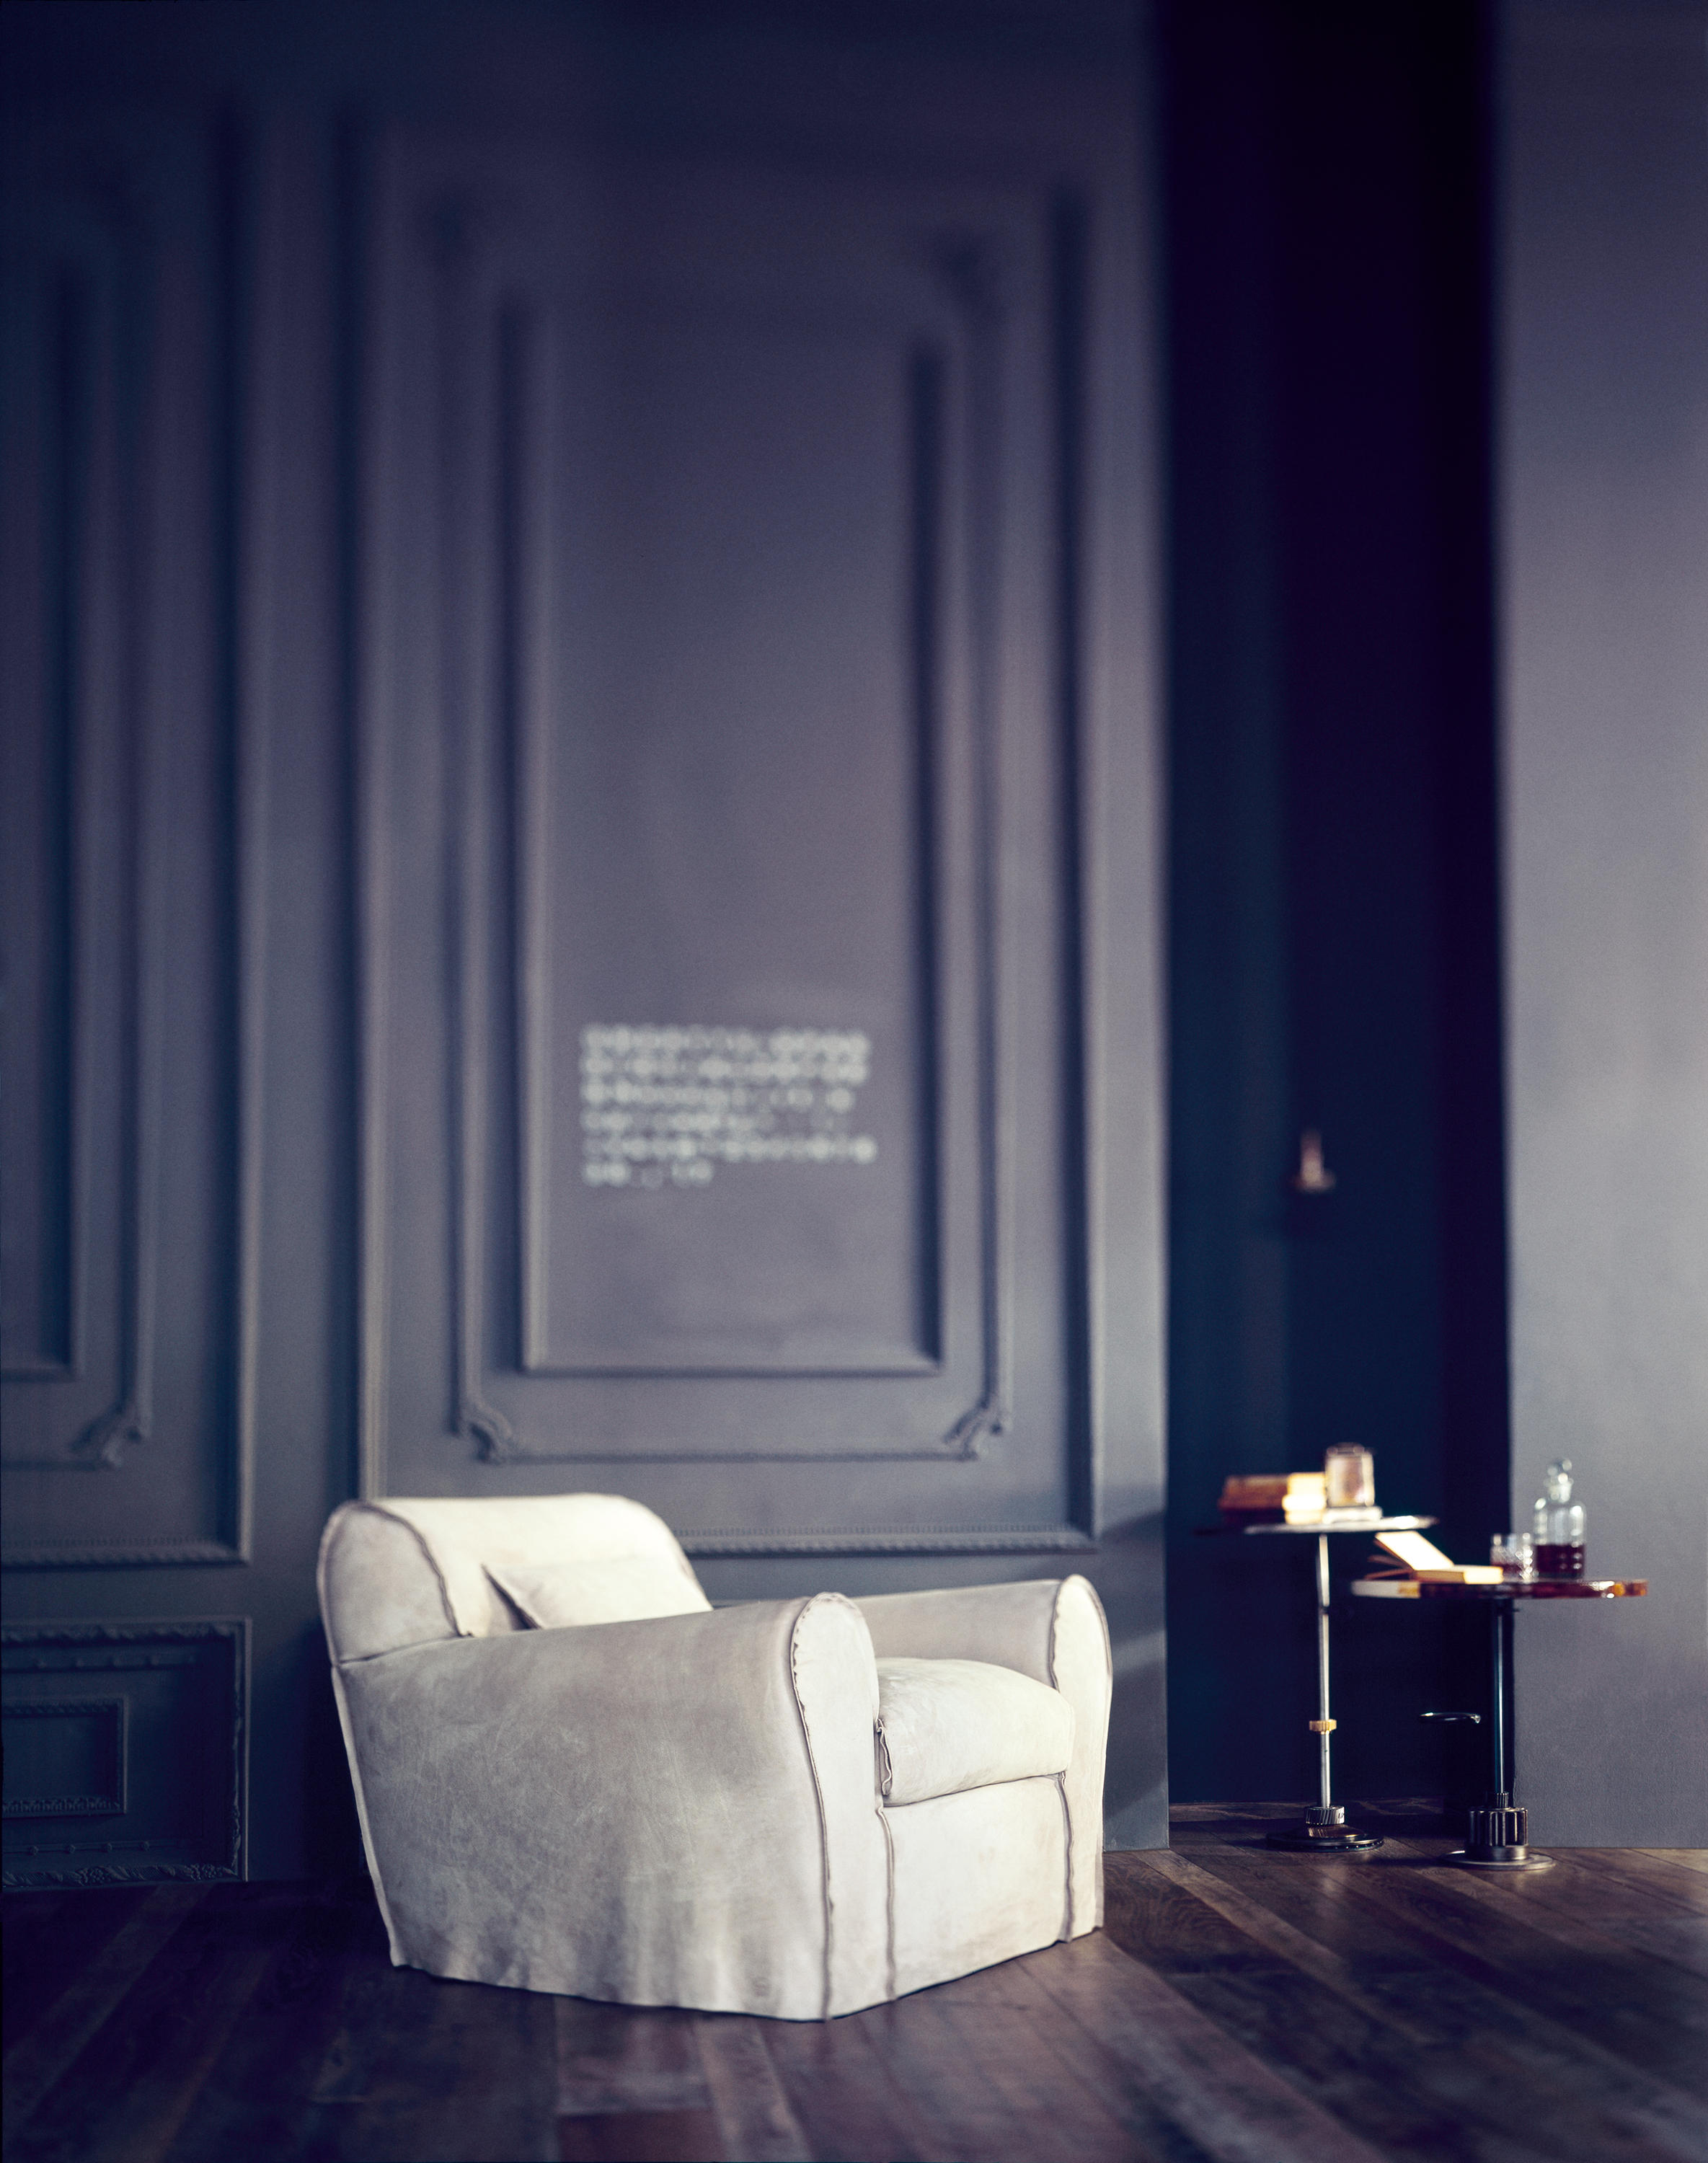 bernhardt sofa price list king size bed philippines housse ottoman pouf - poufs from baxter | architonic